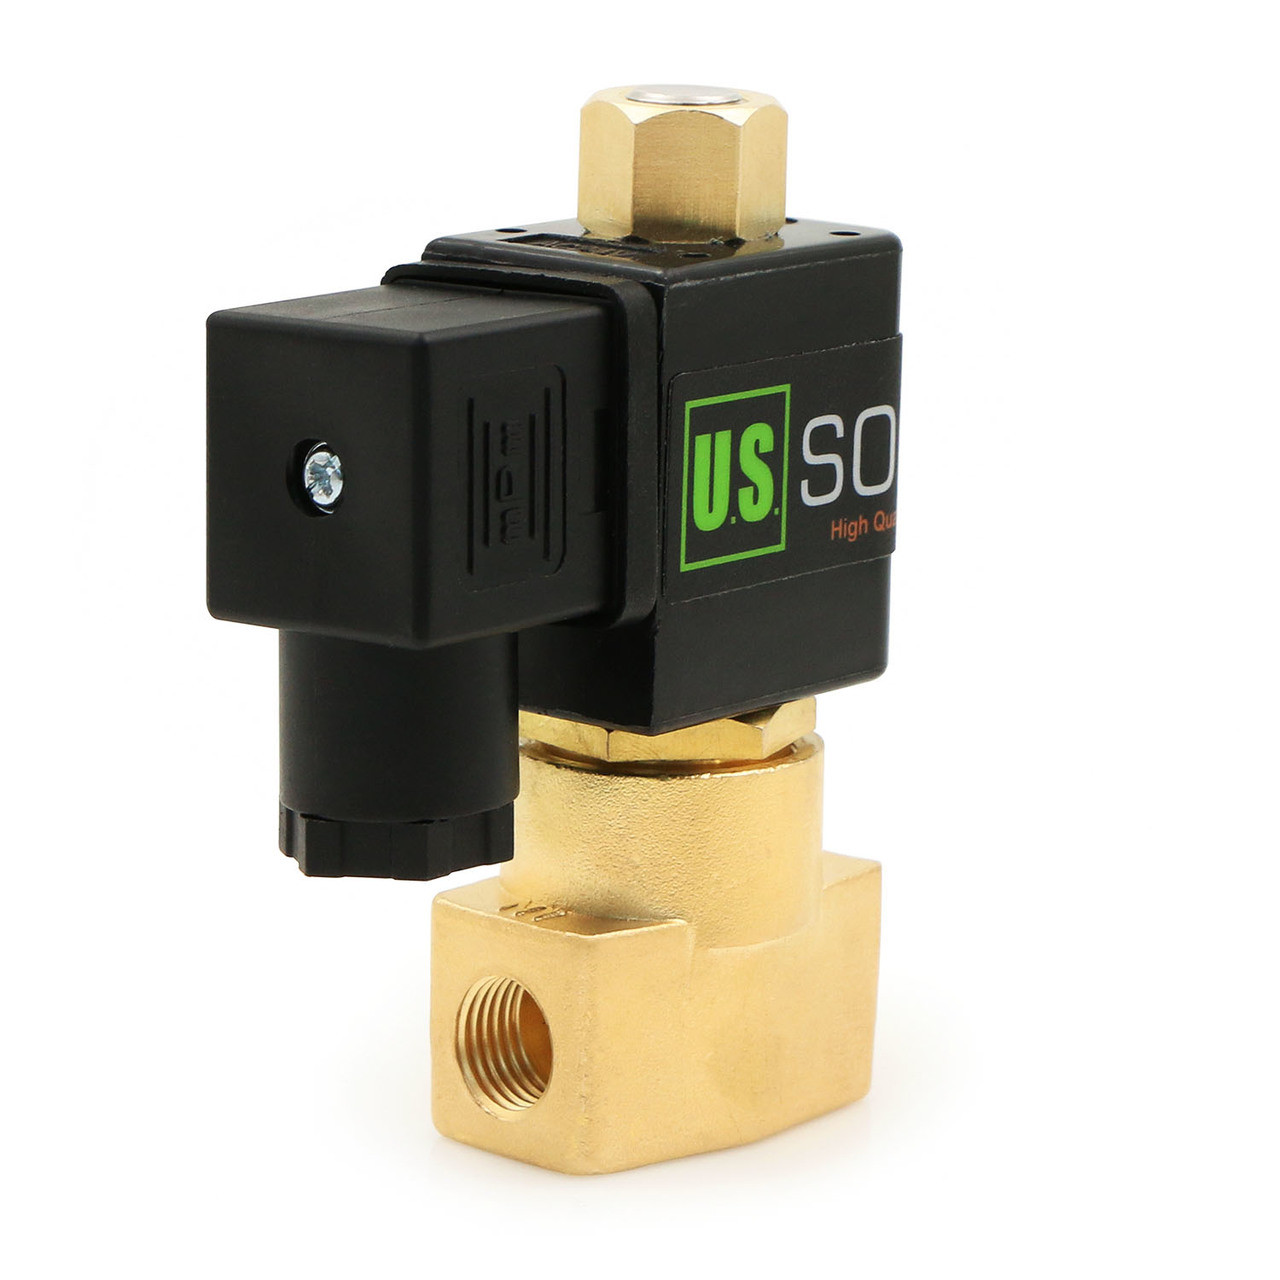 "U.S. Solid Electric Solenoid Valve- 1/4"" 12V DC Solenoid Valve Brass Body Normally Open, NBR SEAL"